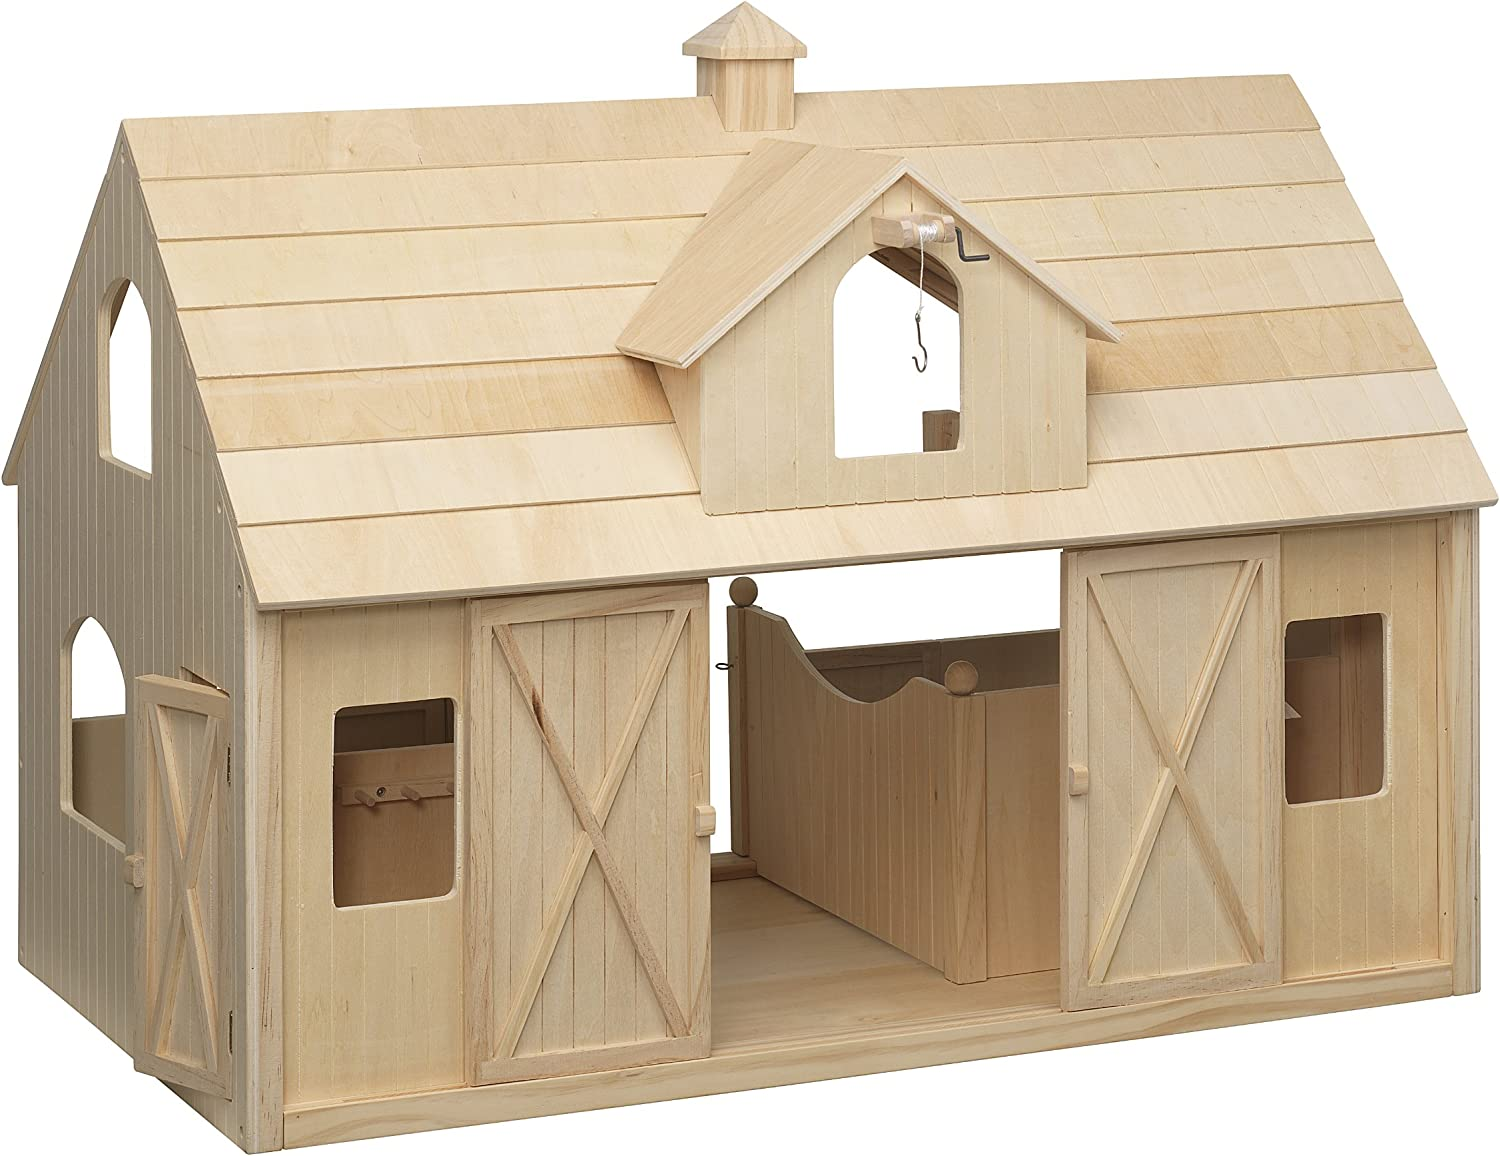 B000MUYXMY Breyer Traditional Deluxe Wood Horse Barn with Cupola Toy Model 81QPGQlMByL.SL1500_